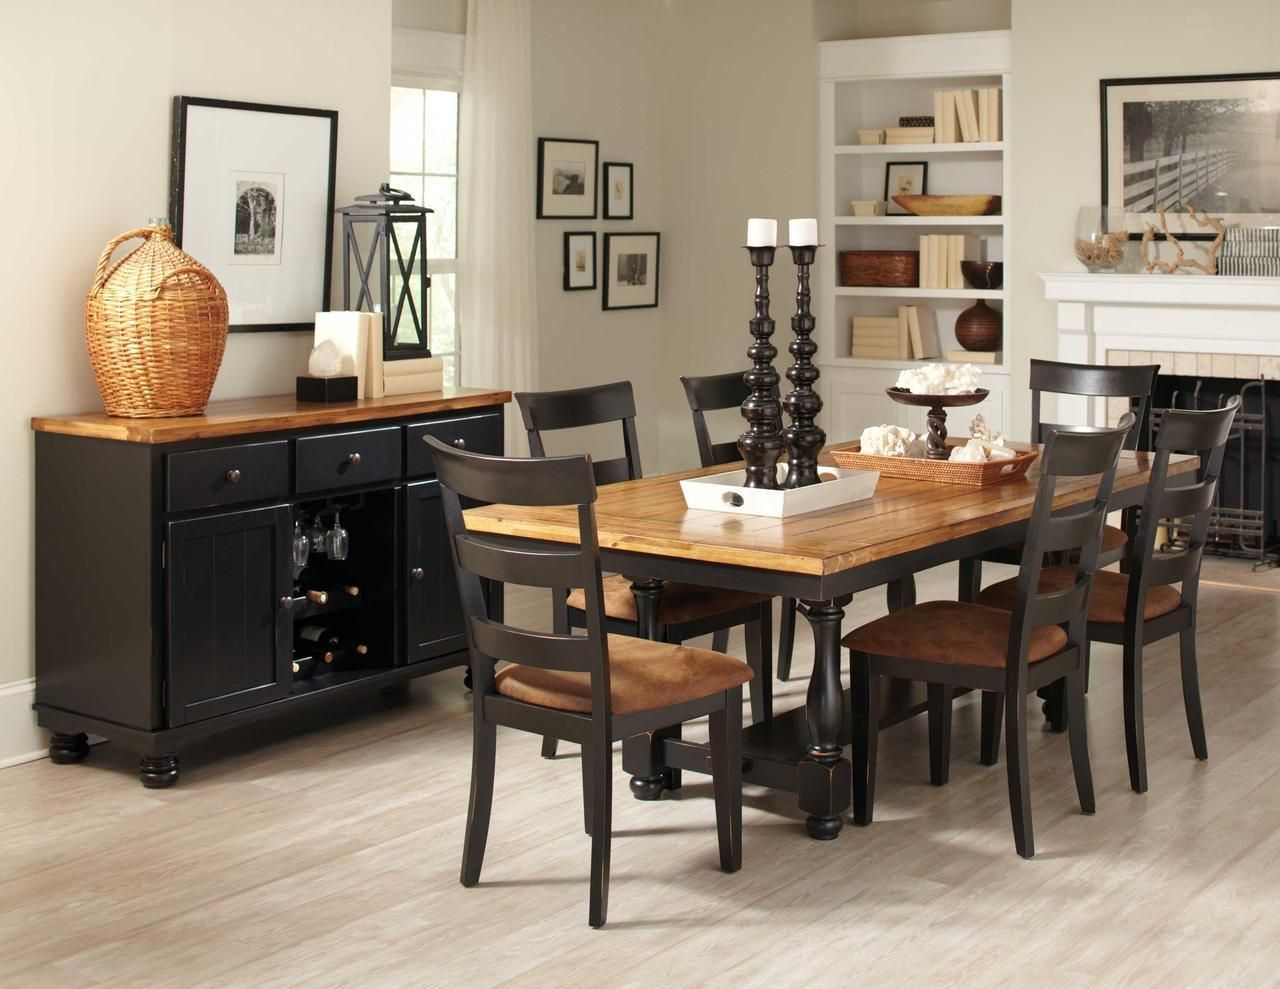 Marvella Rustic Amber Black Country Dining Table Set Country